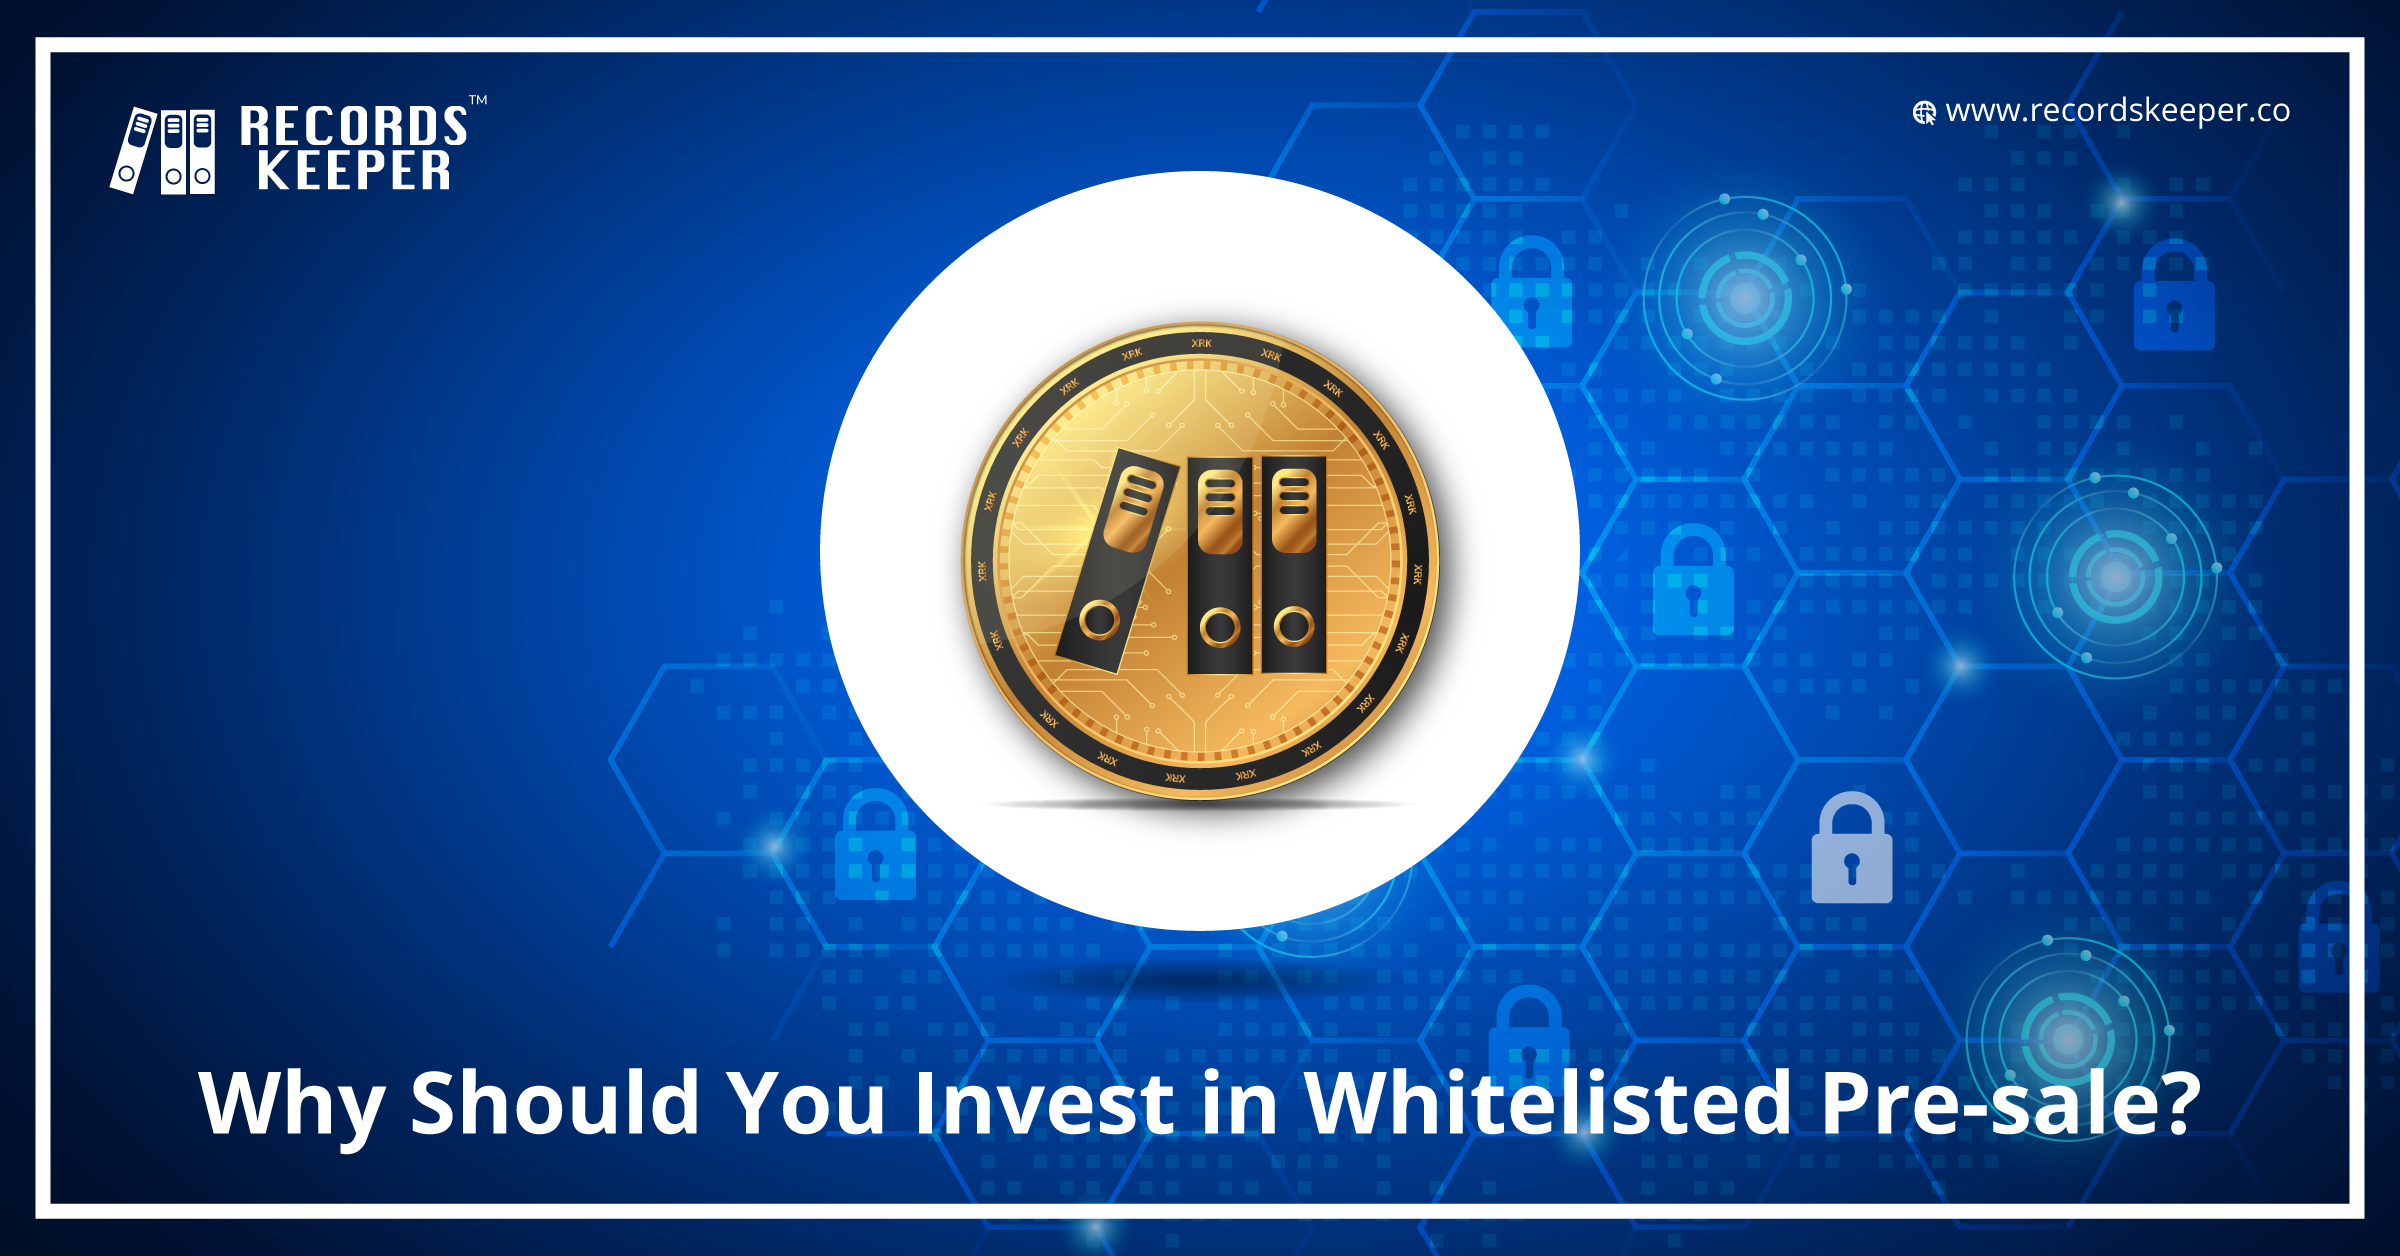 Why Should You Invest in Whitelisted Pre-sale?